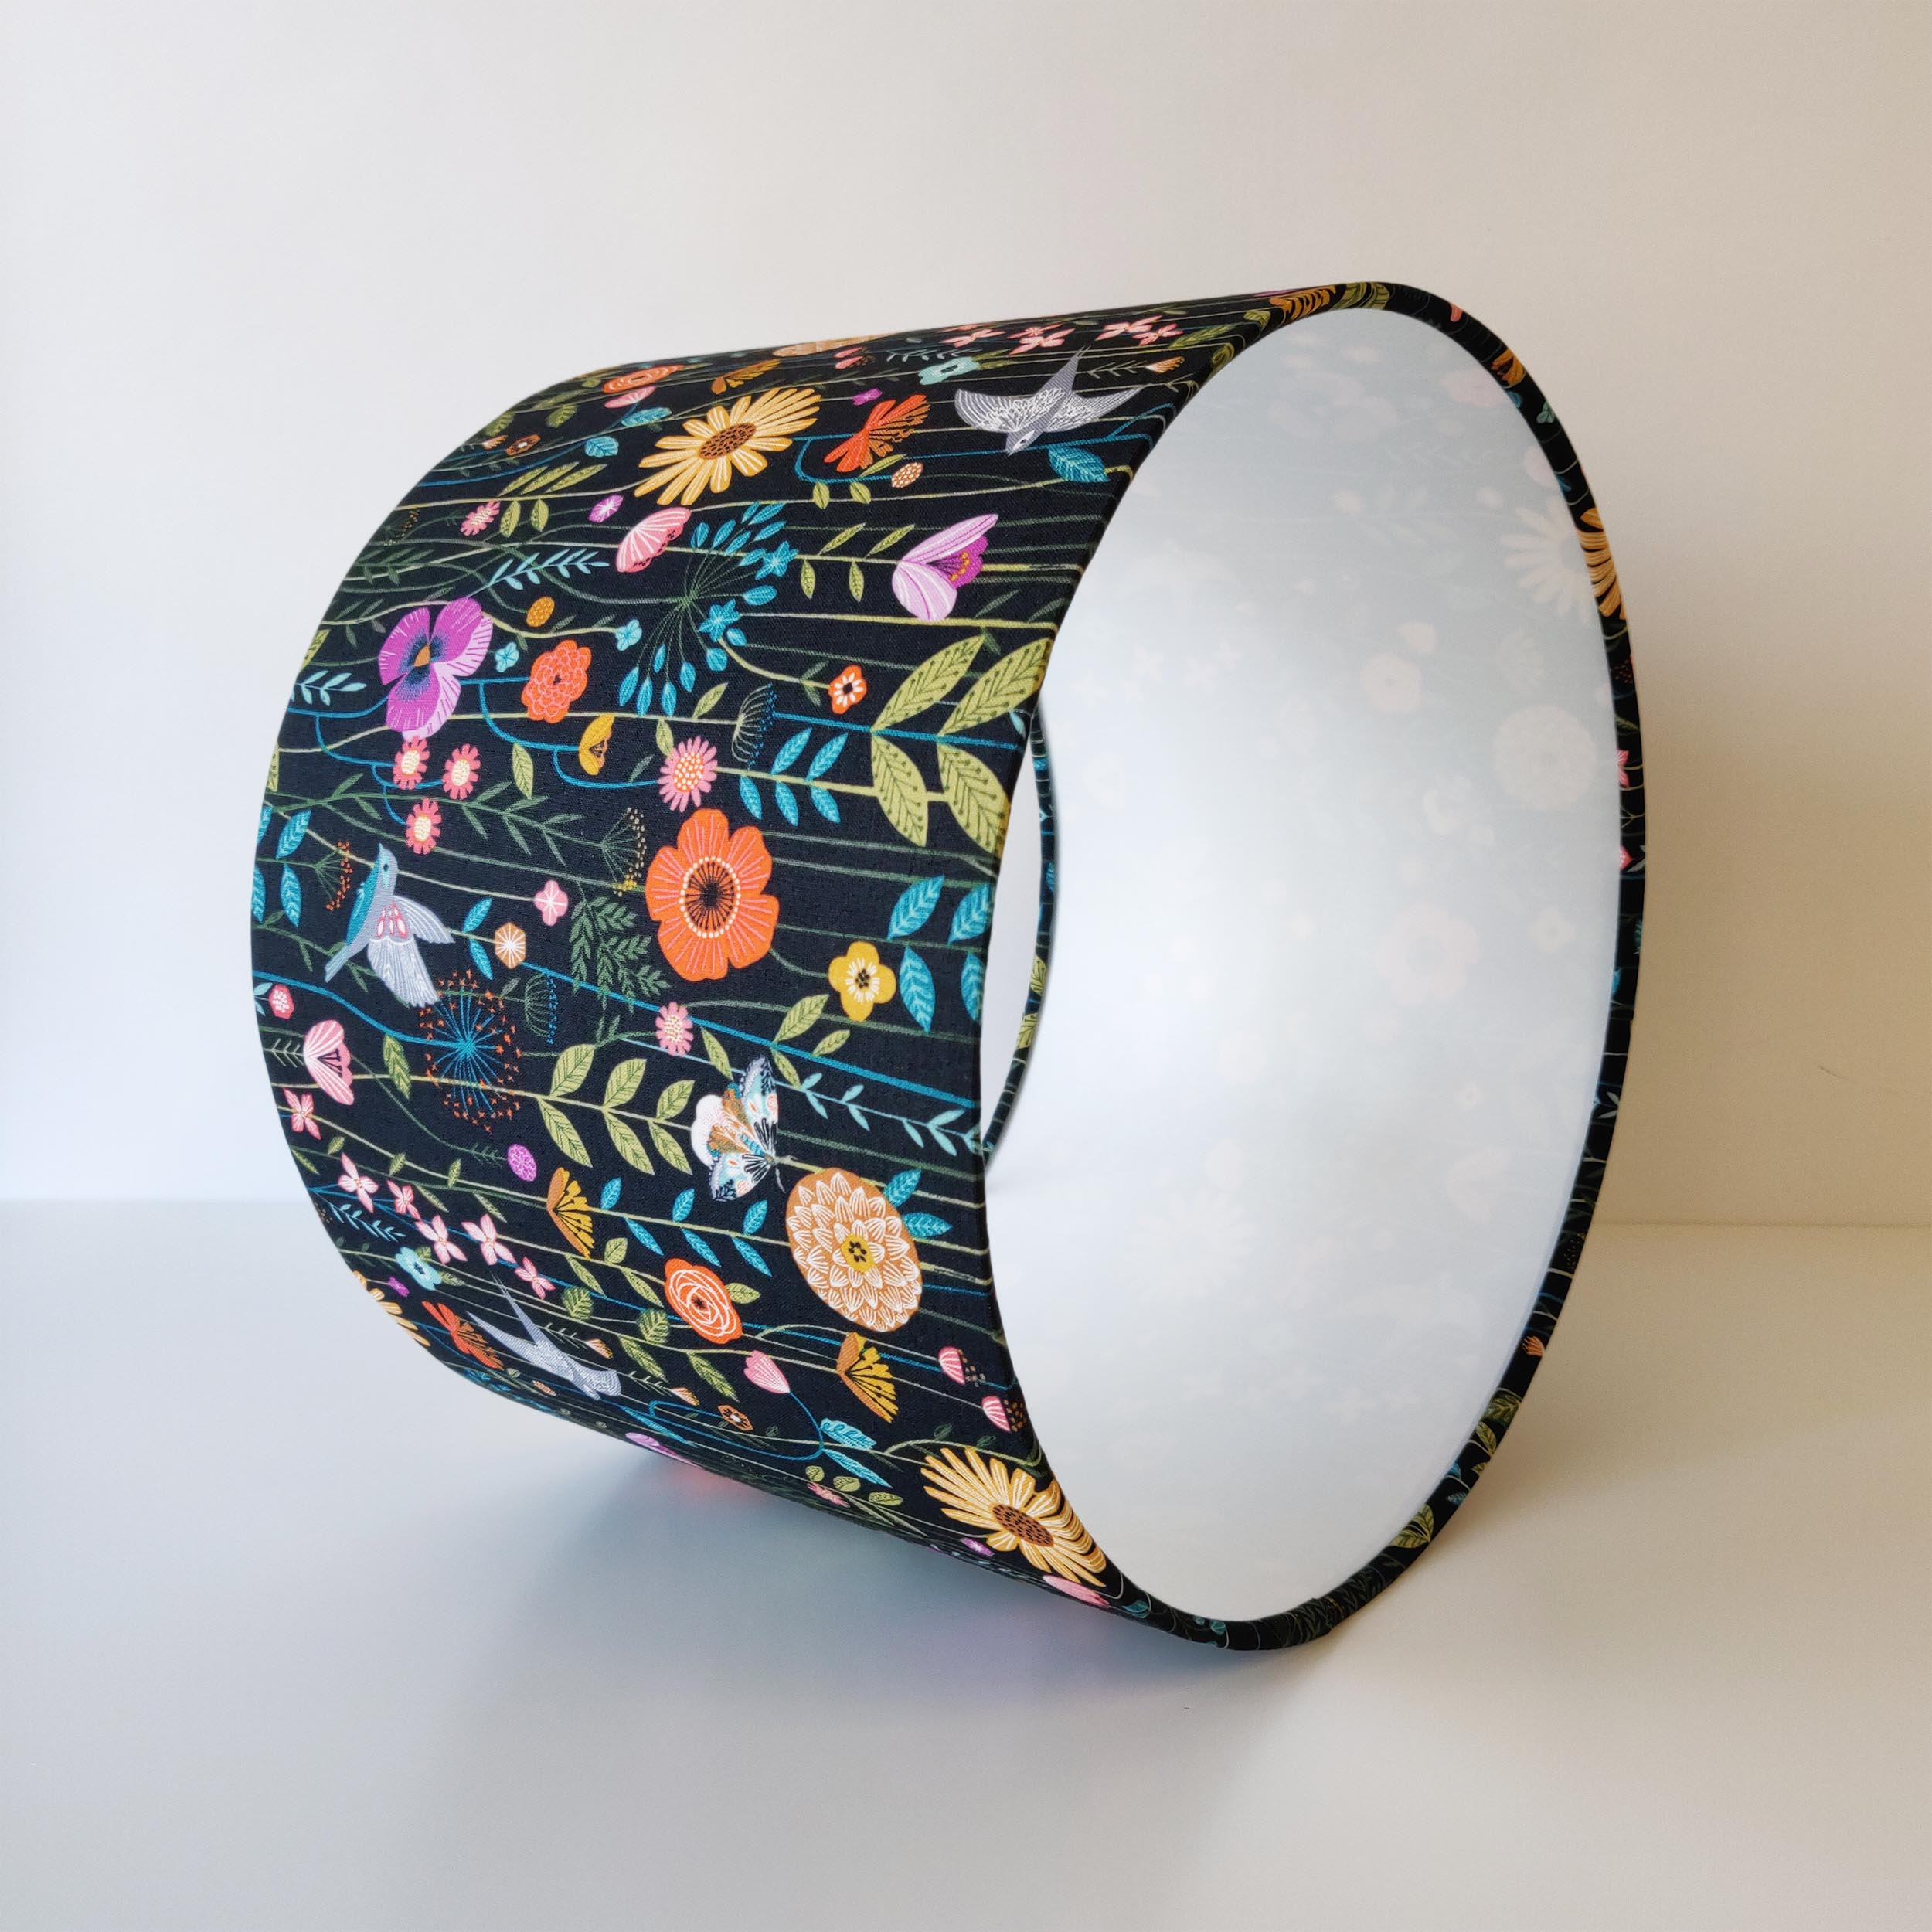 Green Birds and Flowers Lampshade with White Lining